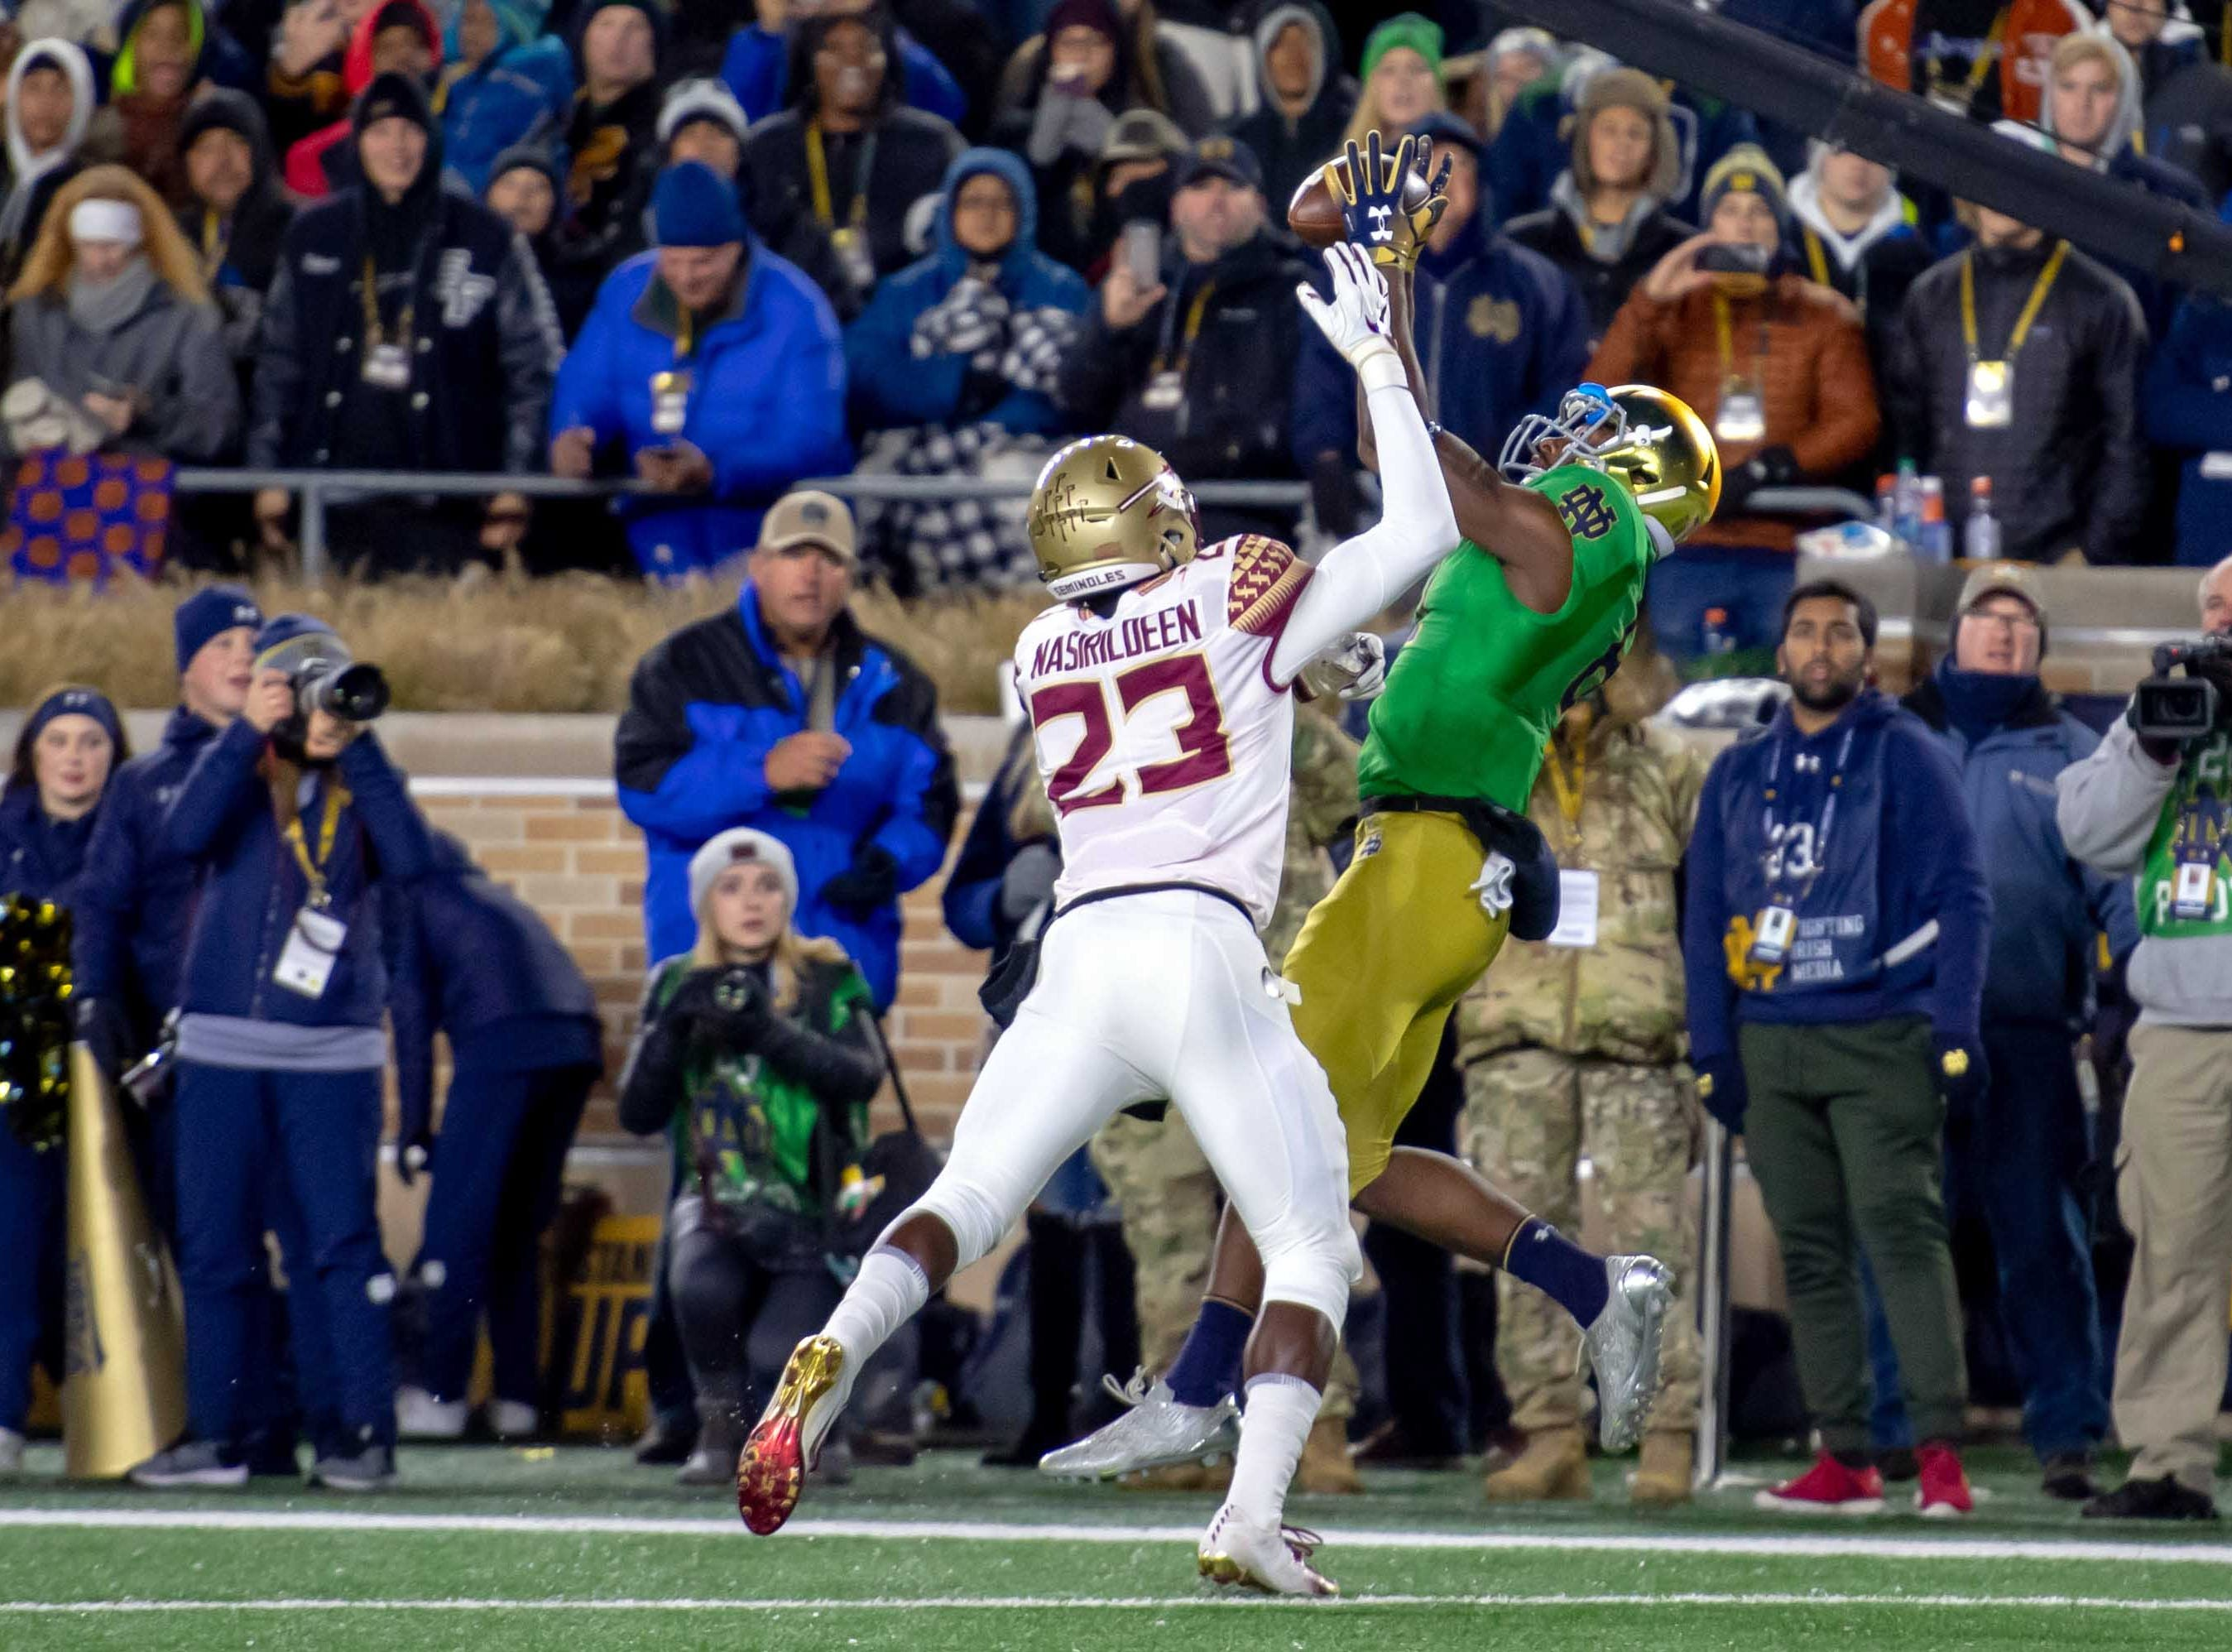 Nov 10, 2018; South Bend, IN, USA; Notre Dame Fighting Irish wide receiver Miles Boykin (81) catches a pass for a touchdown as Florida State Seminoles safety Hamsah Nasirildeen (23) defends in the first quarter at Notre Dame Stadium. Mandatory Credit: Matt Cashore-USA TODAY Sports